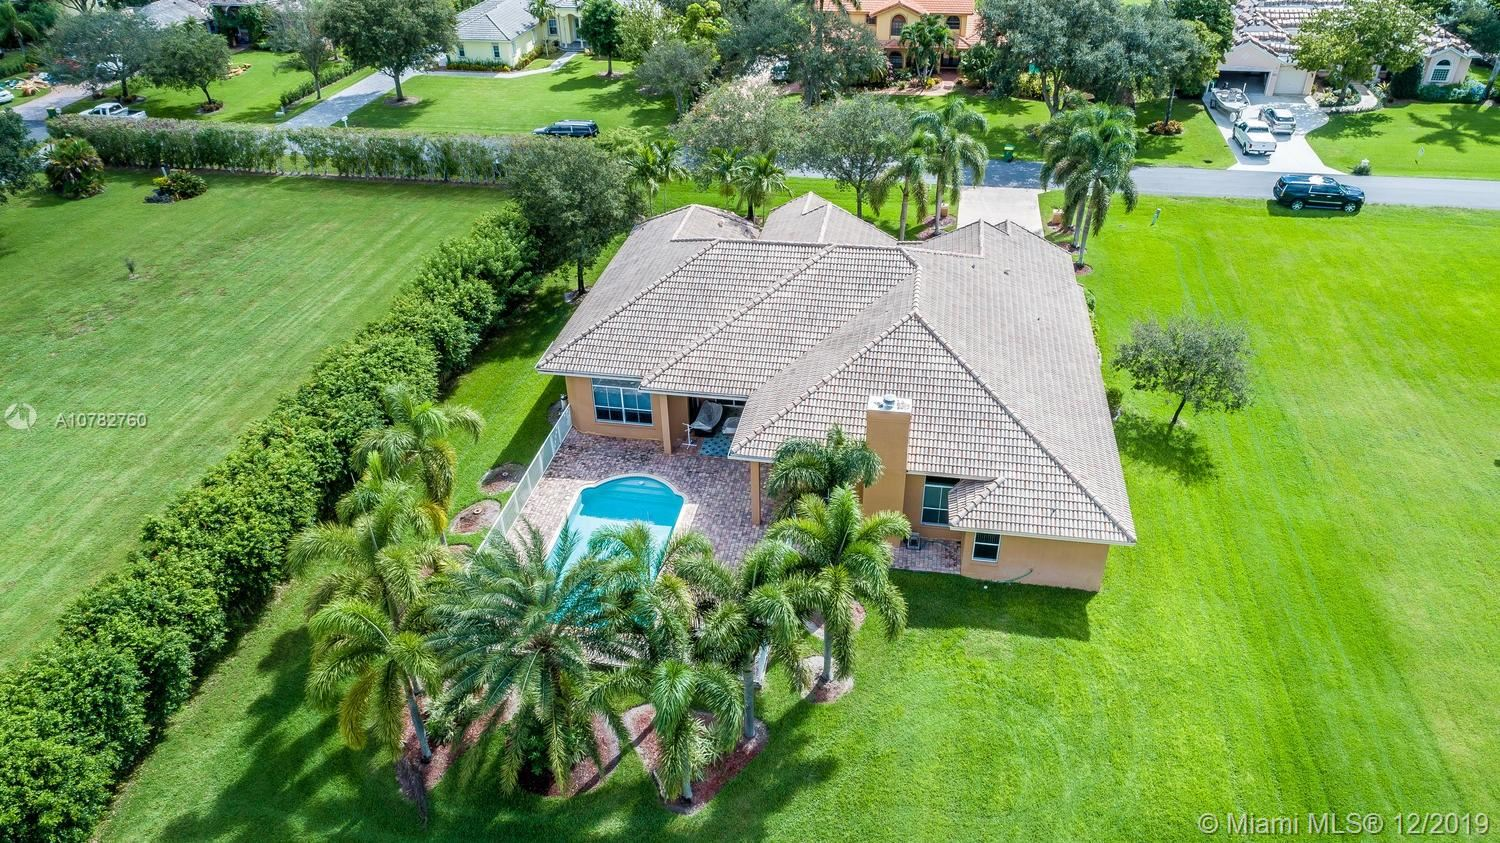 Photo of 831 NW 115th Ave, Plantation, FL 33325 (MLS # A10782760)